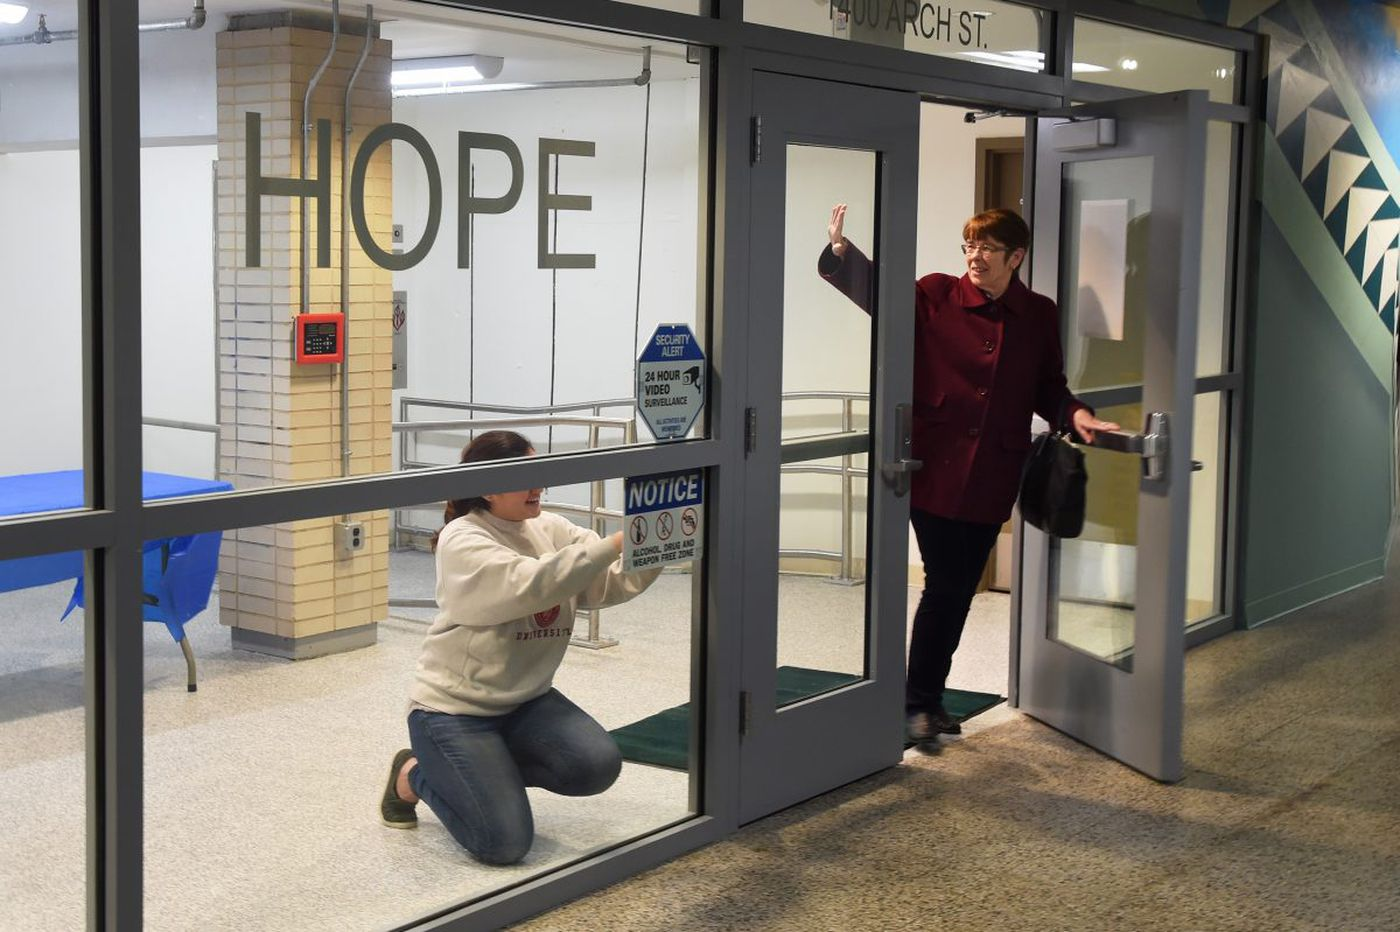 Get a first look at Suburban Station's new homeless services center